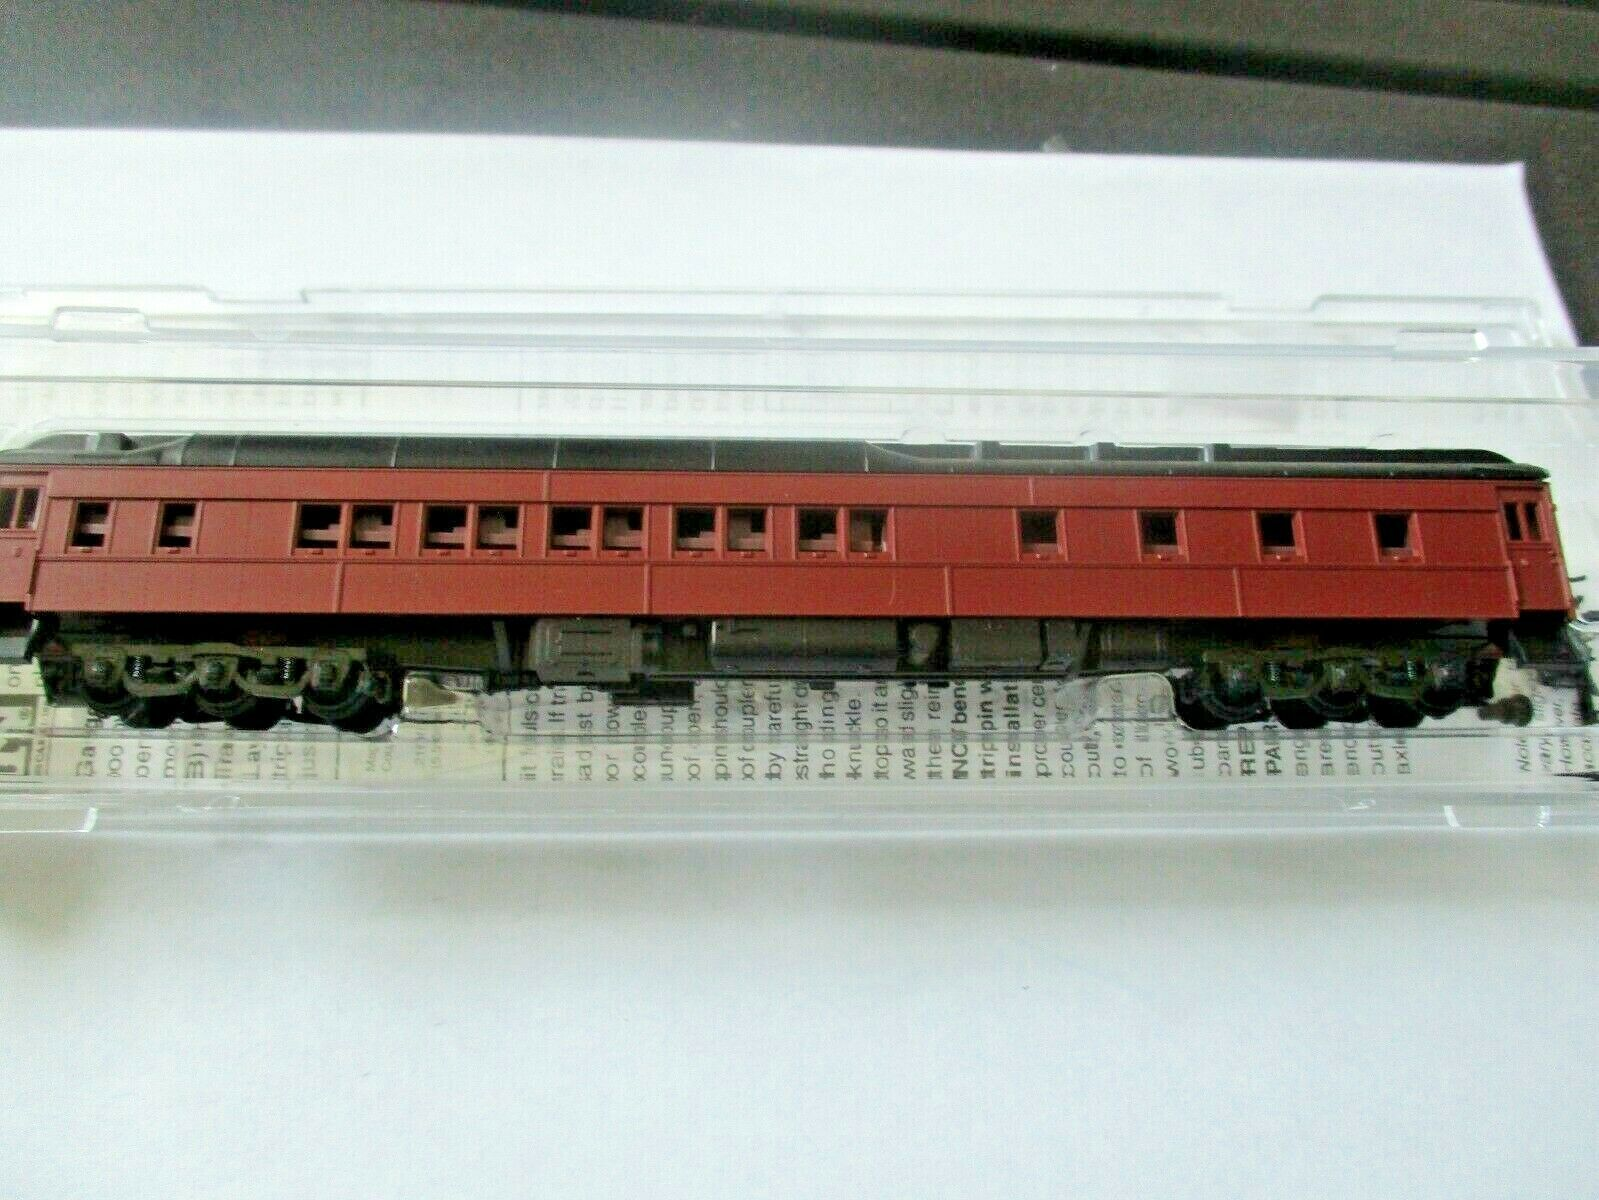 Micro-Trains # 14100002 Undecorated Tuscan Red 10-1-2 Heavywight Sleeper Car (N)